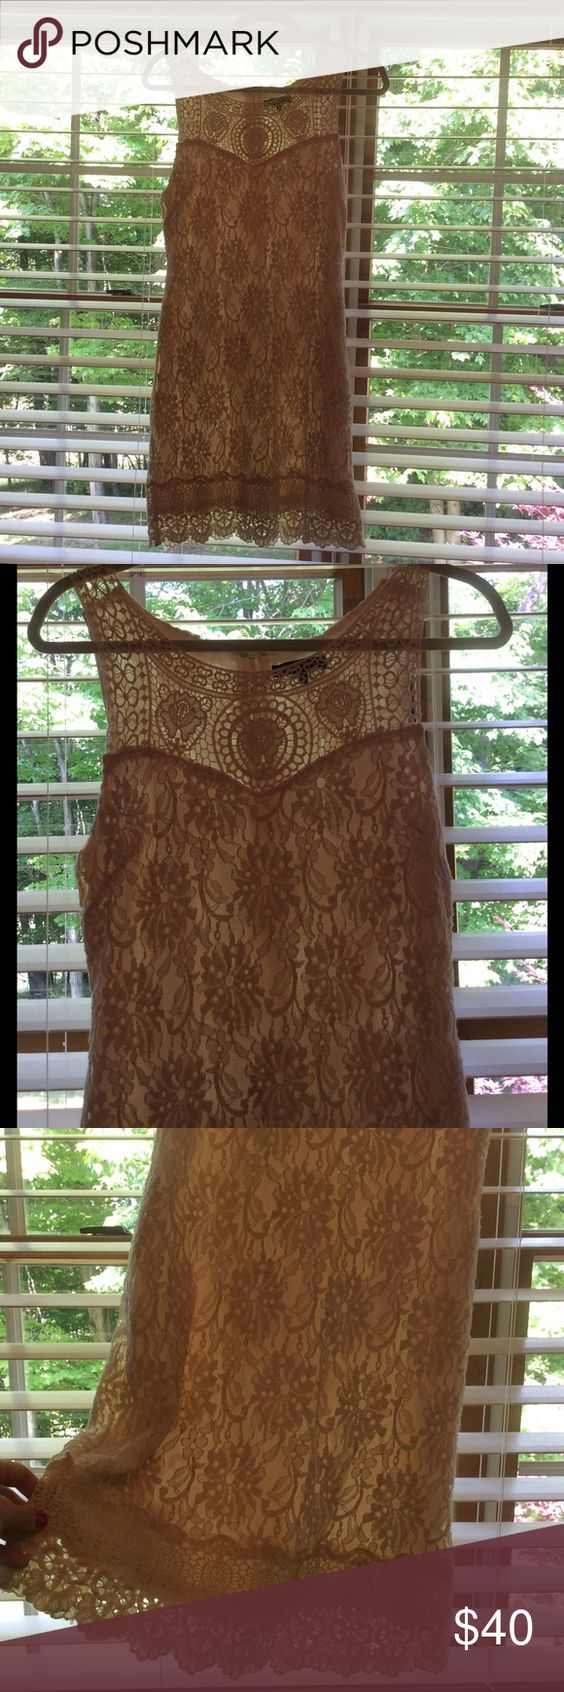 Beige Lace Dress From UO Detailed lace shell over a nude slip. C. Luce purchased from Urban Outfitters. Zipper on the side. Fits like a 4. C. Luce Dresses